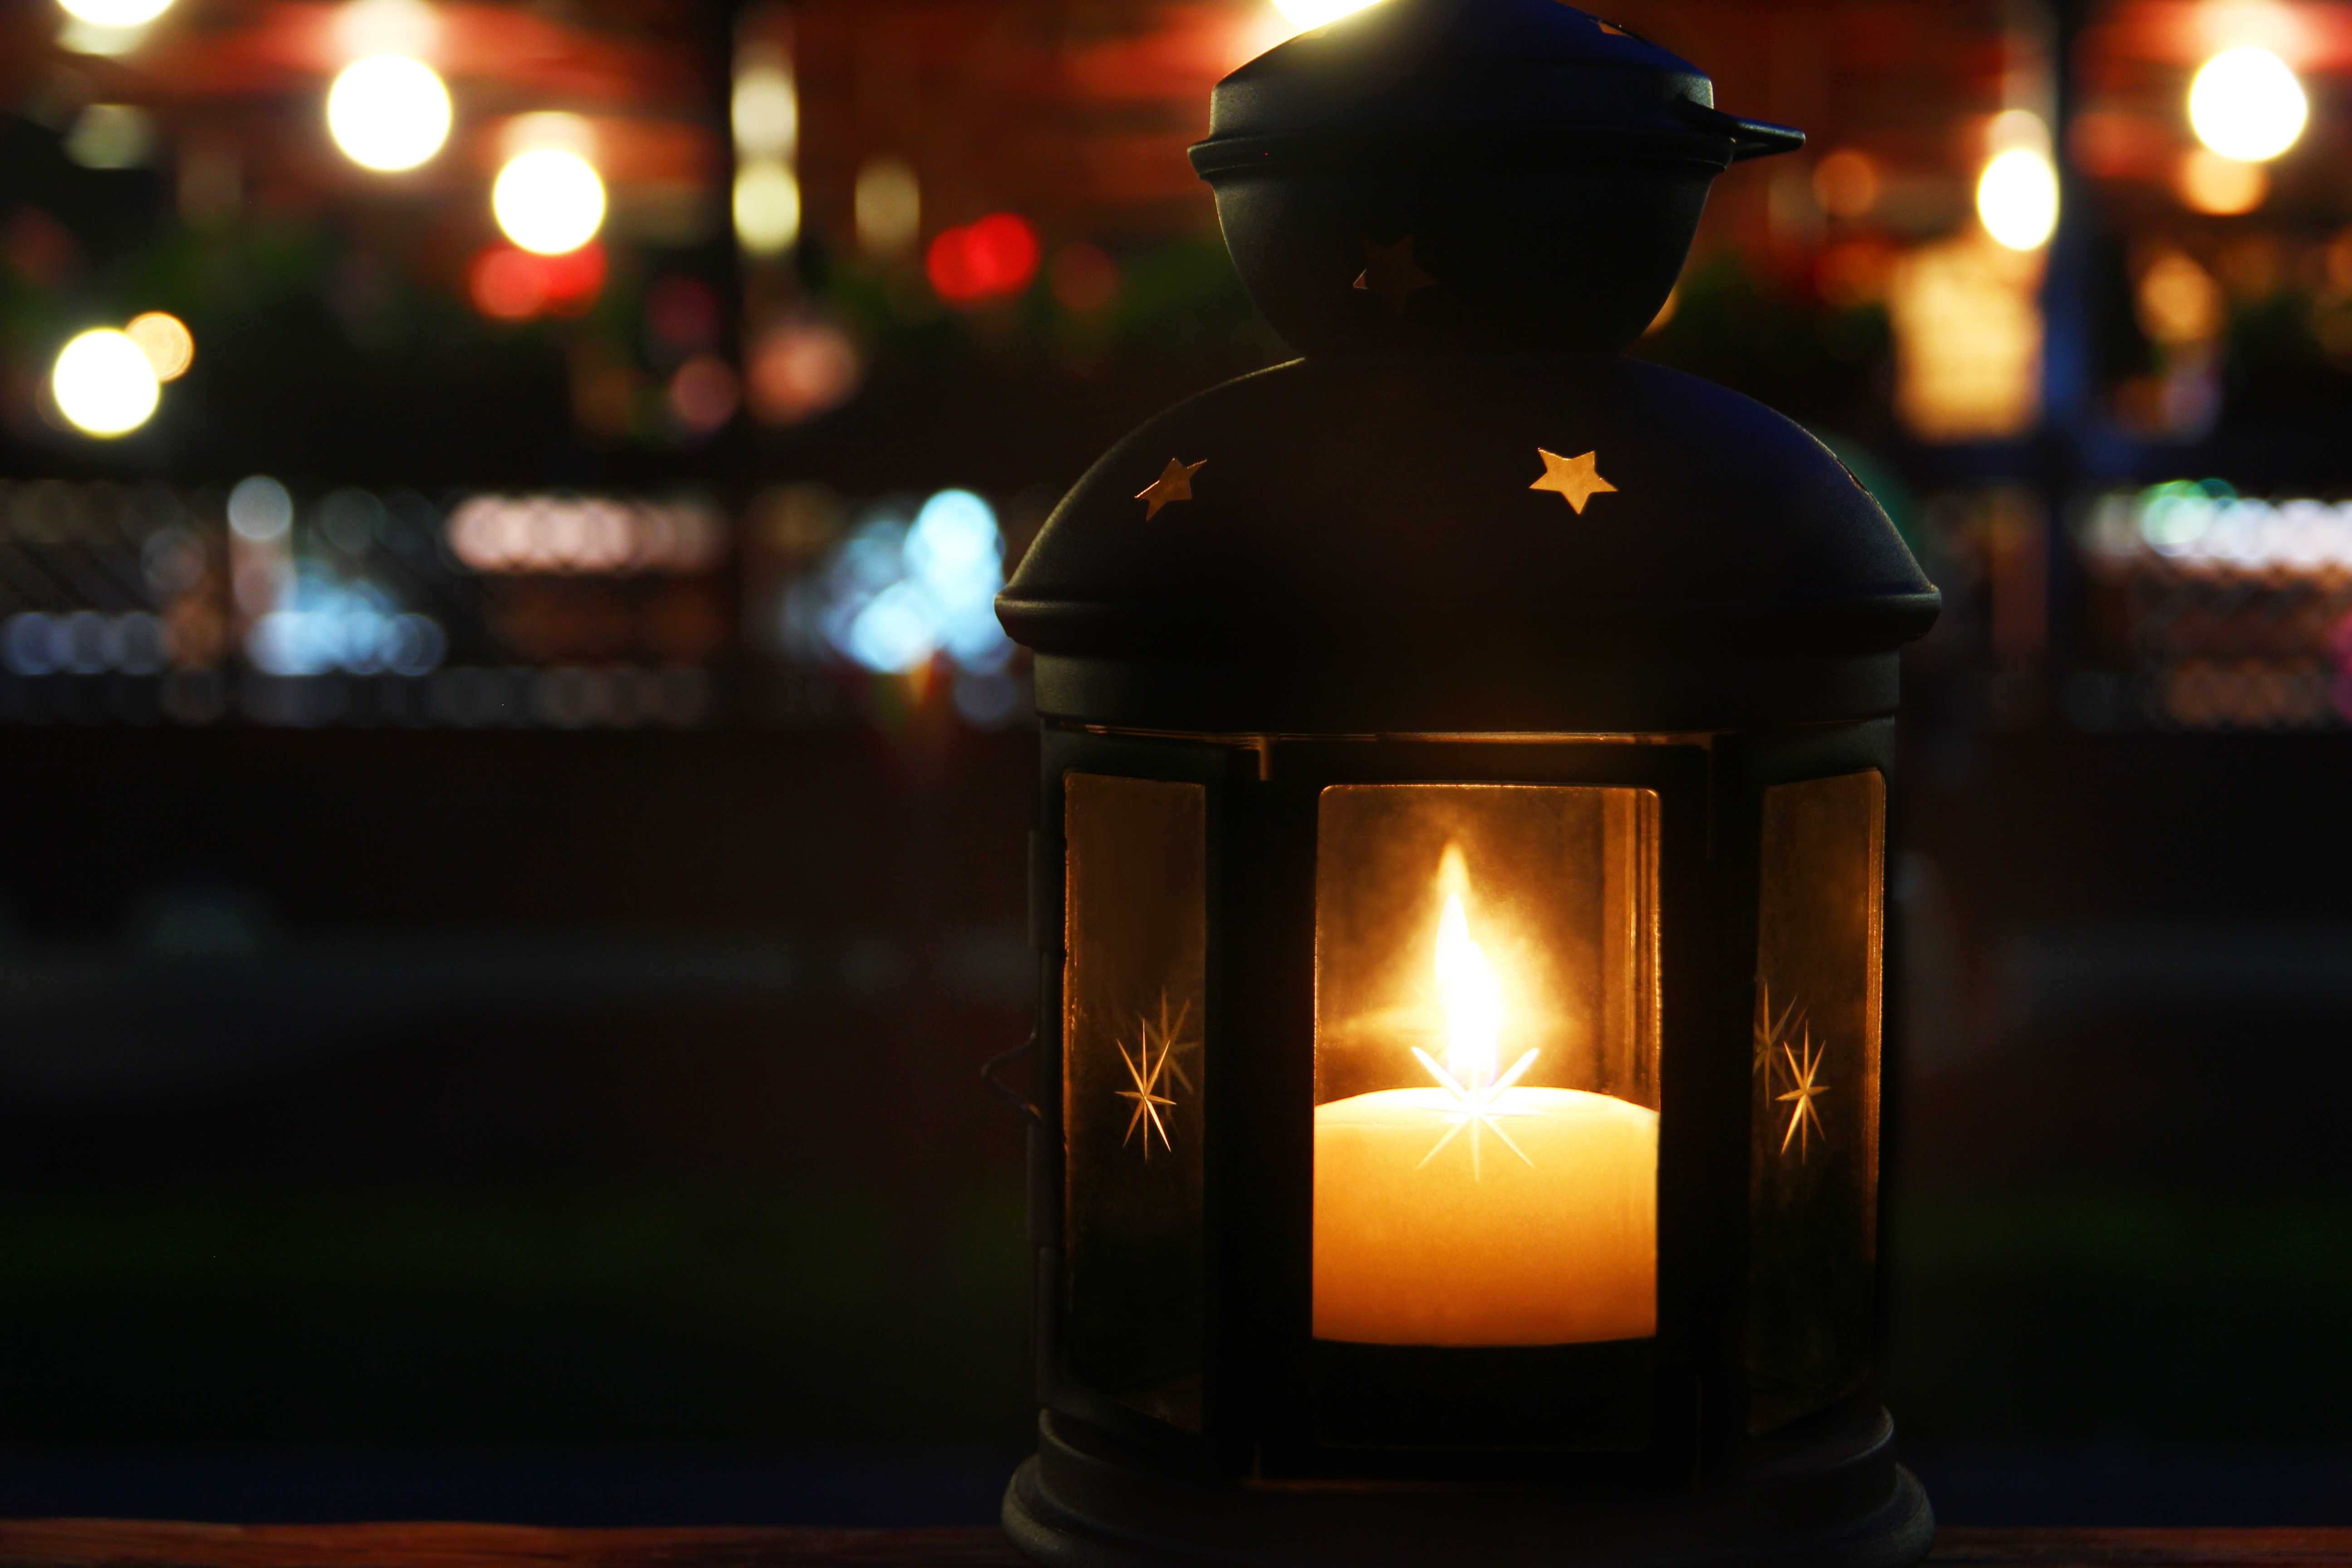 How To Use Outdoor Decorative Candle Lanterns: 5 Steps Intended For Best And Newest Outdoor Lanterns And Candles (View 15 of 20)